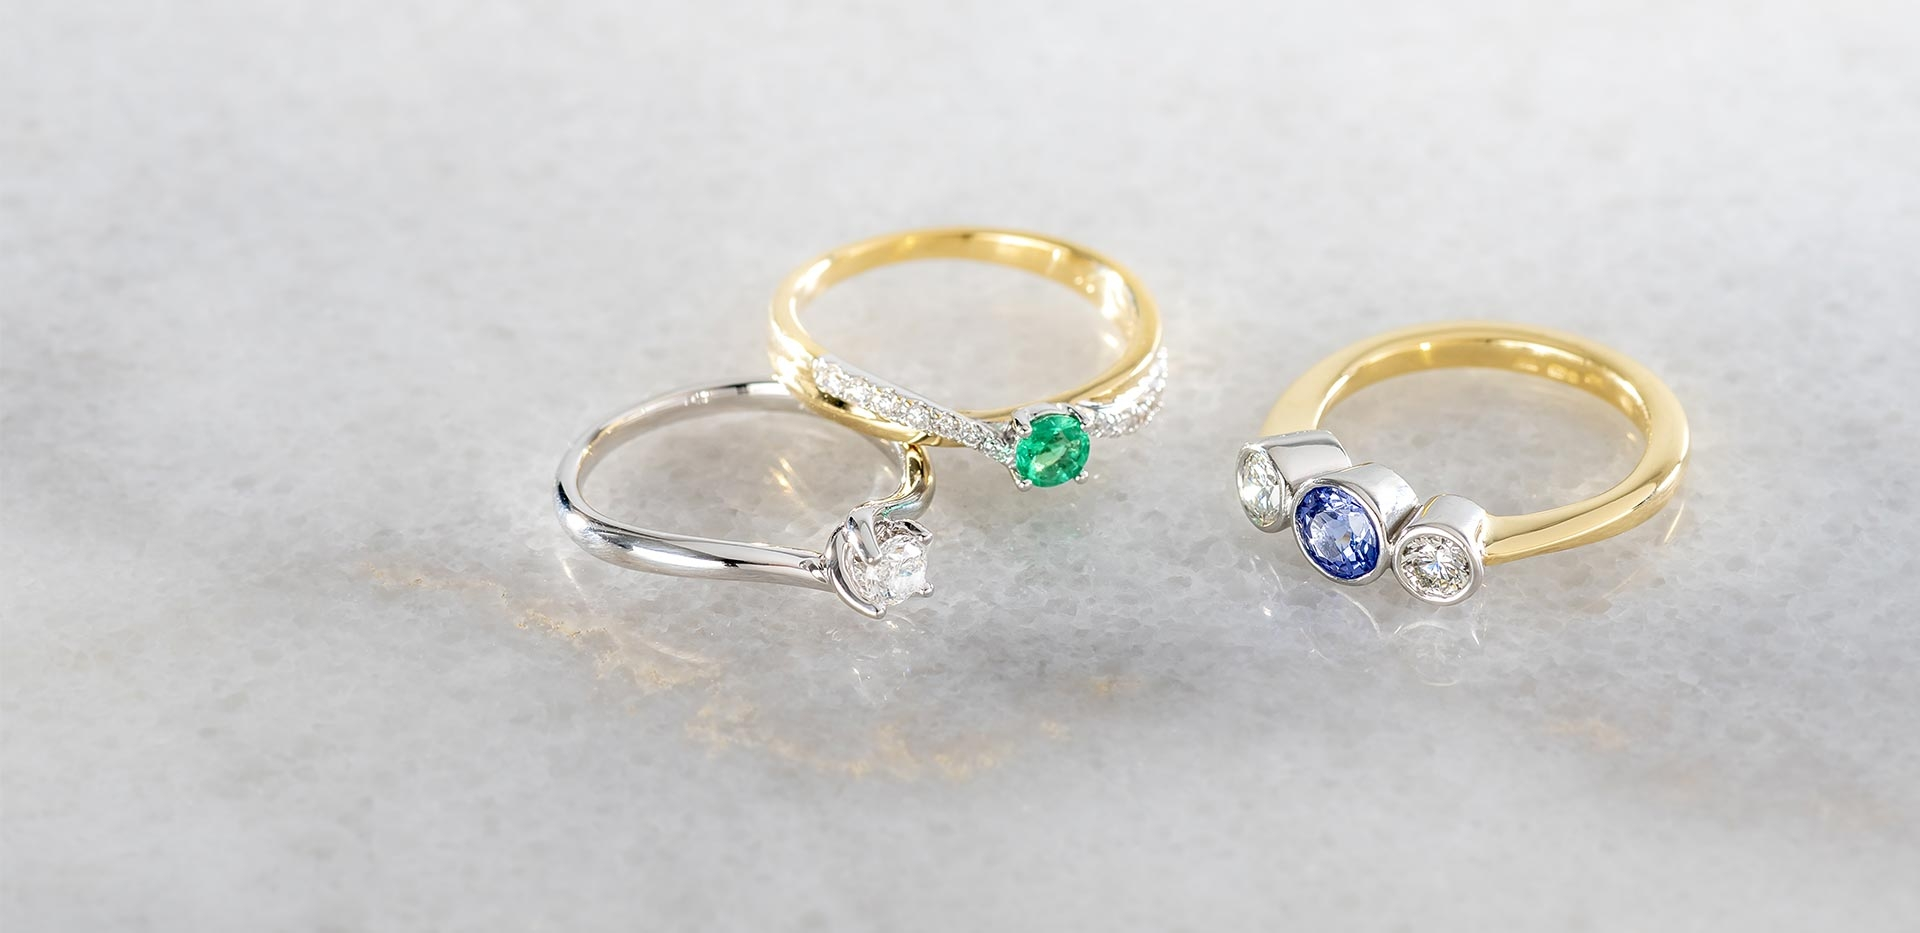 Rings - Dawes Jewellery Category